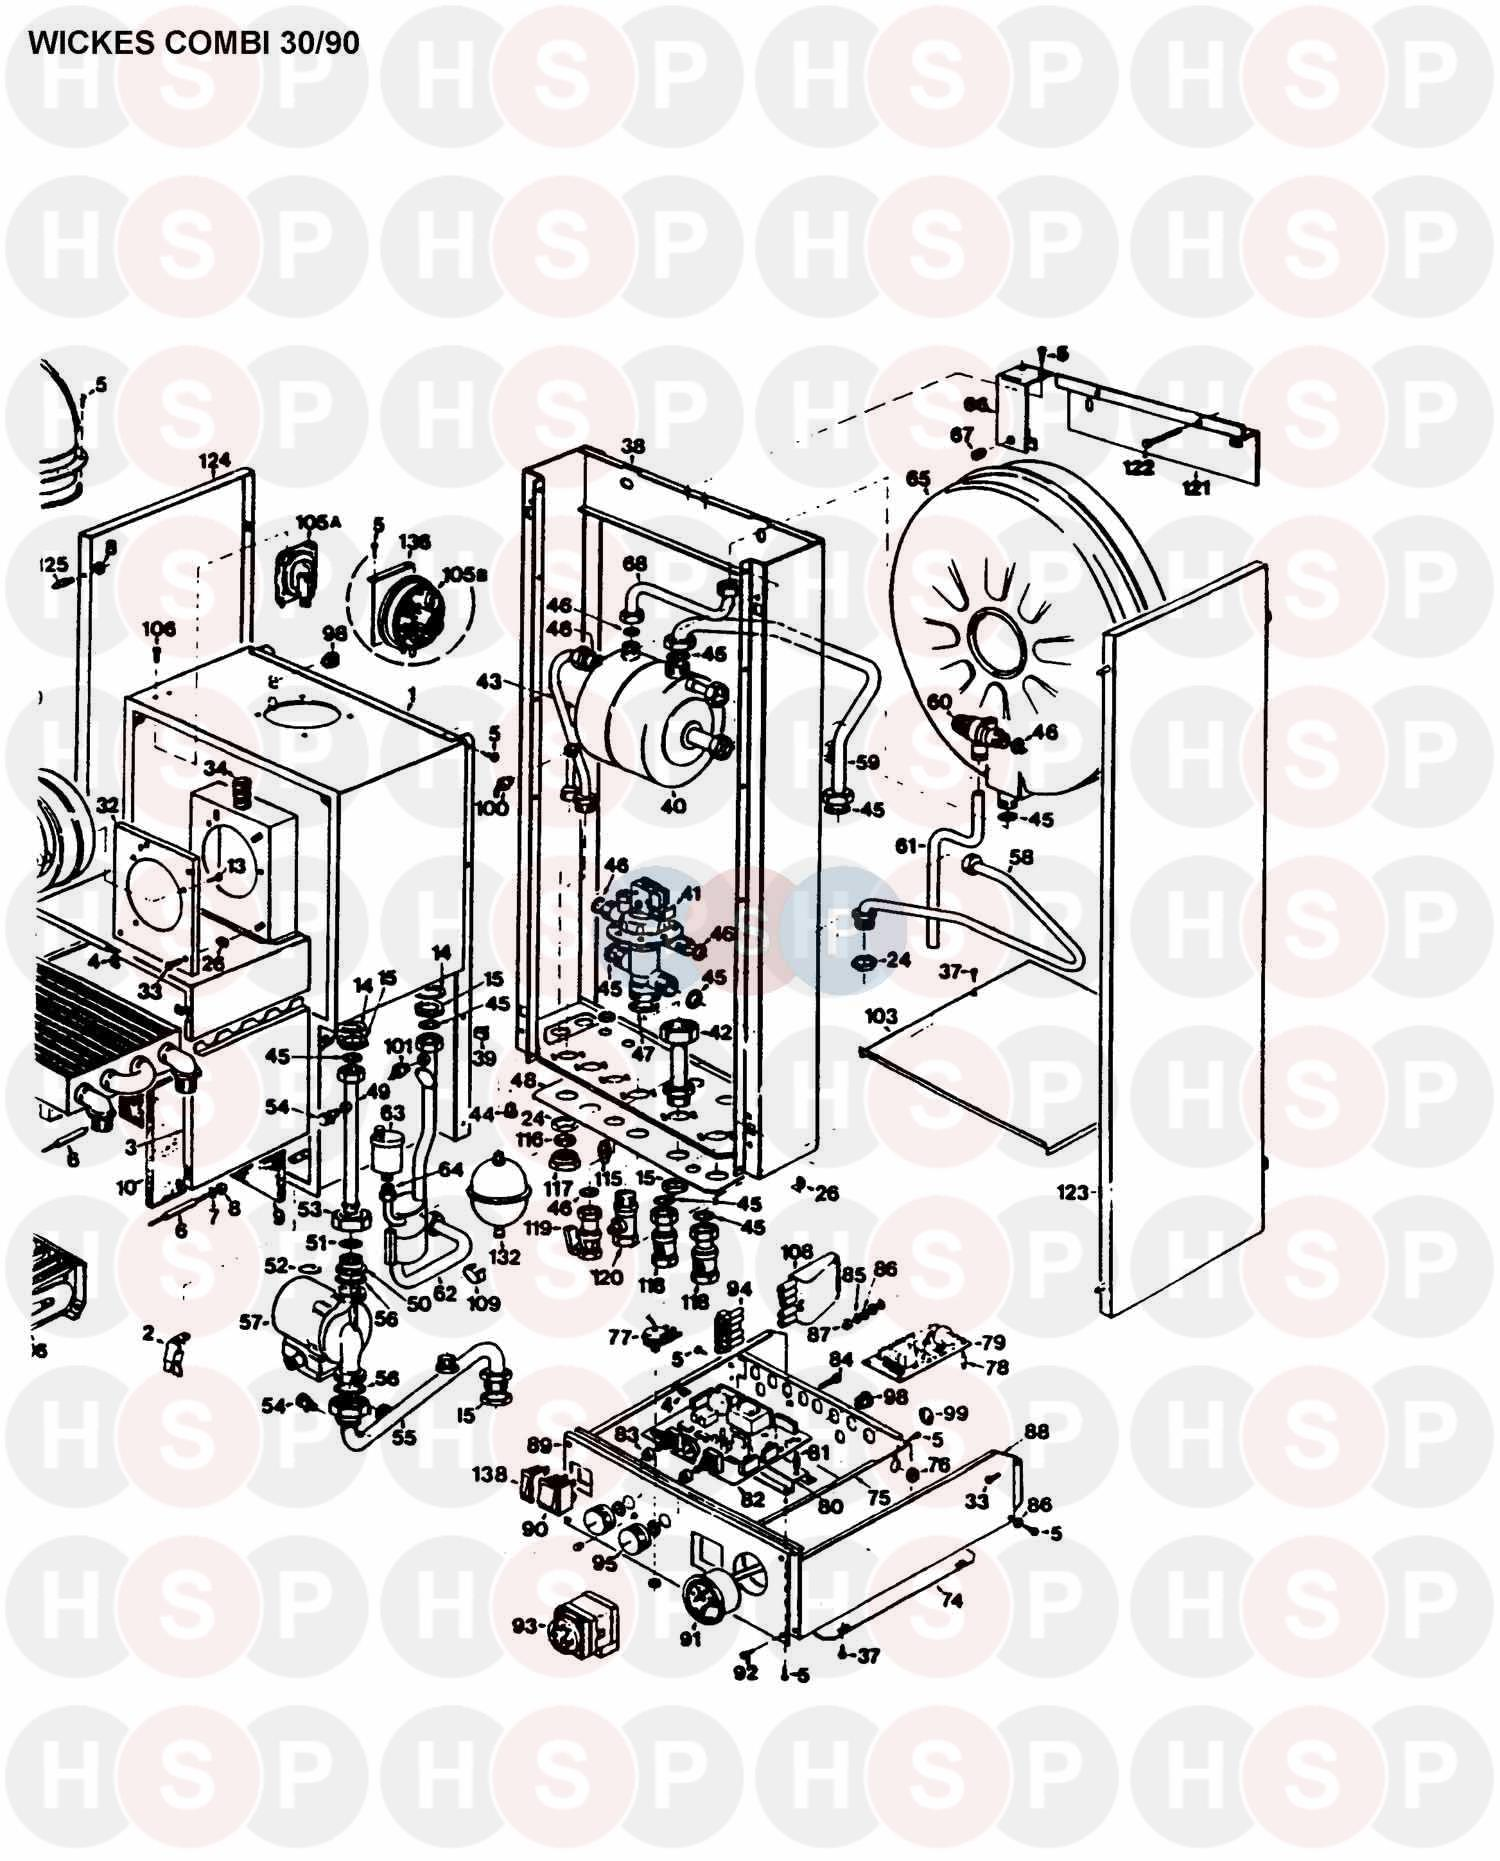 Halstead Wickes Combi 30  90  Boiler Assembly 2 Diagram